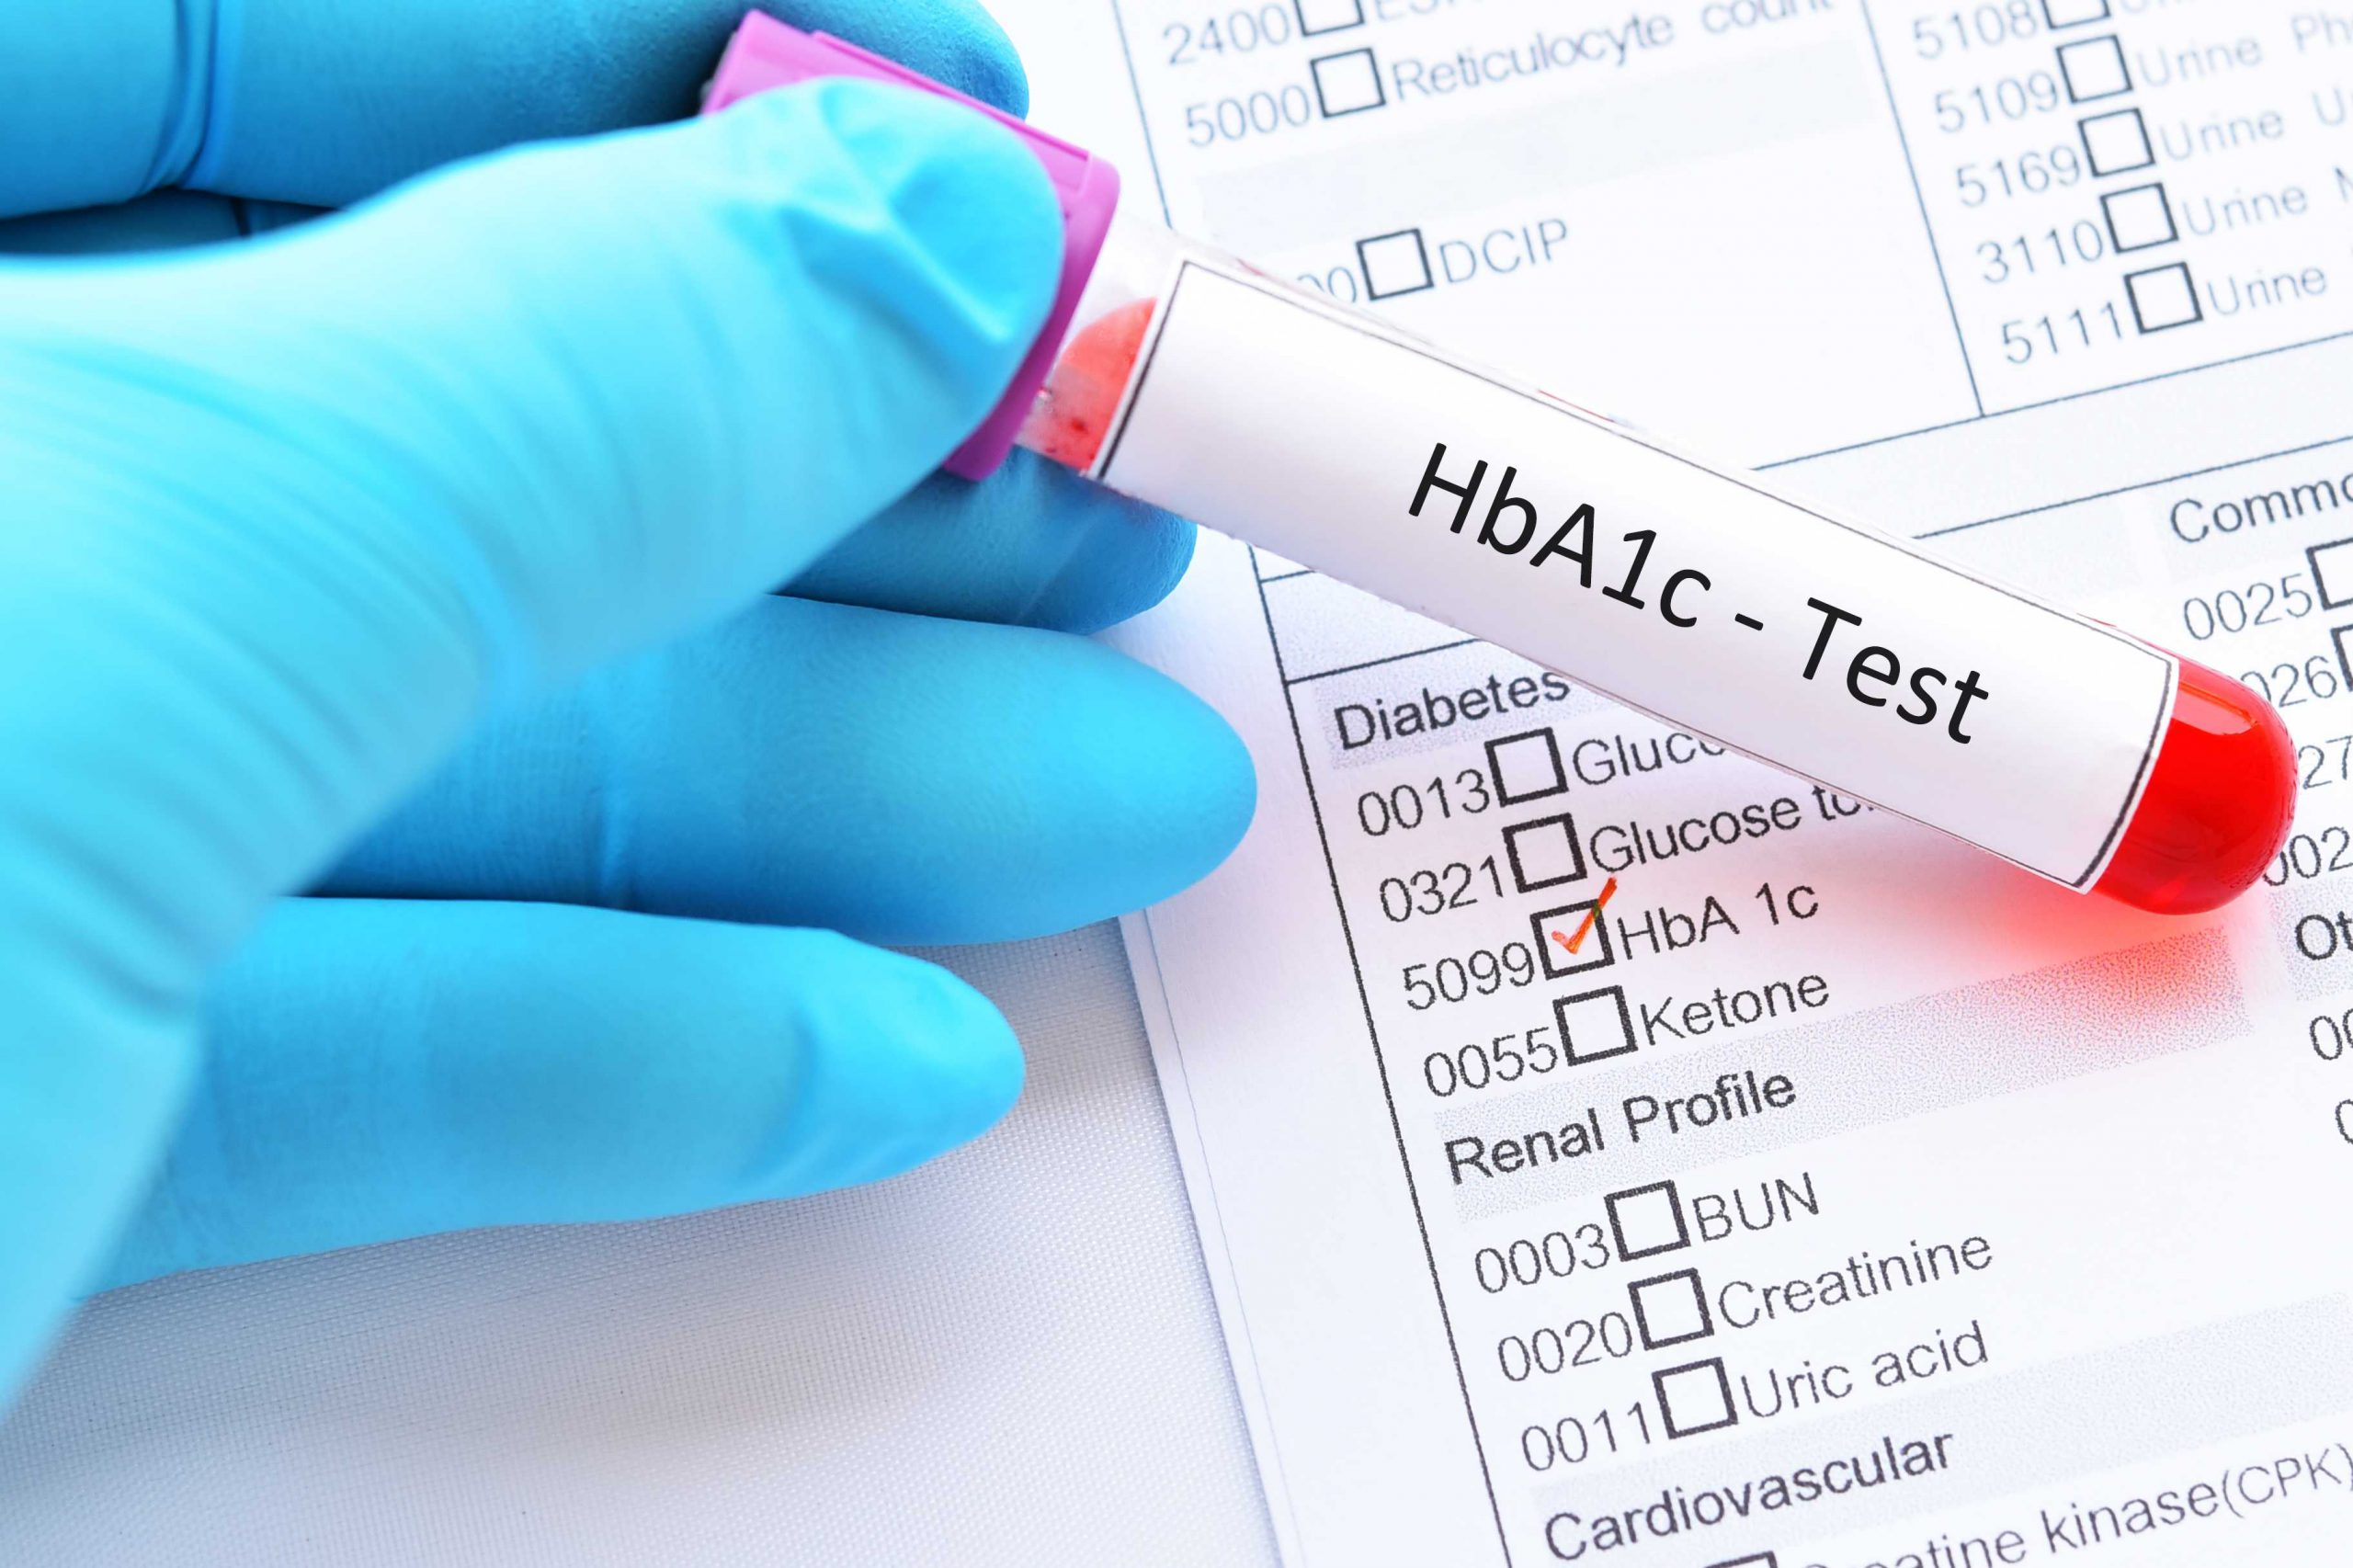 Hba1c Test For Diabetes Diagnosis Target Hba1c Home Tests